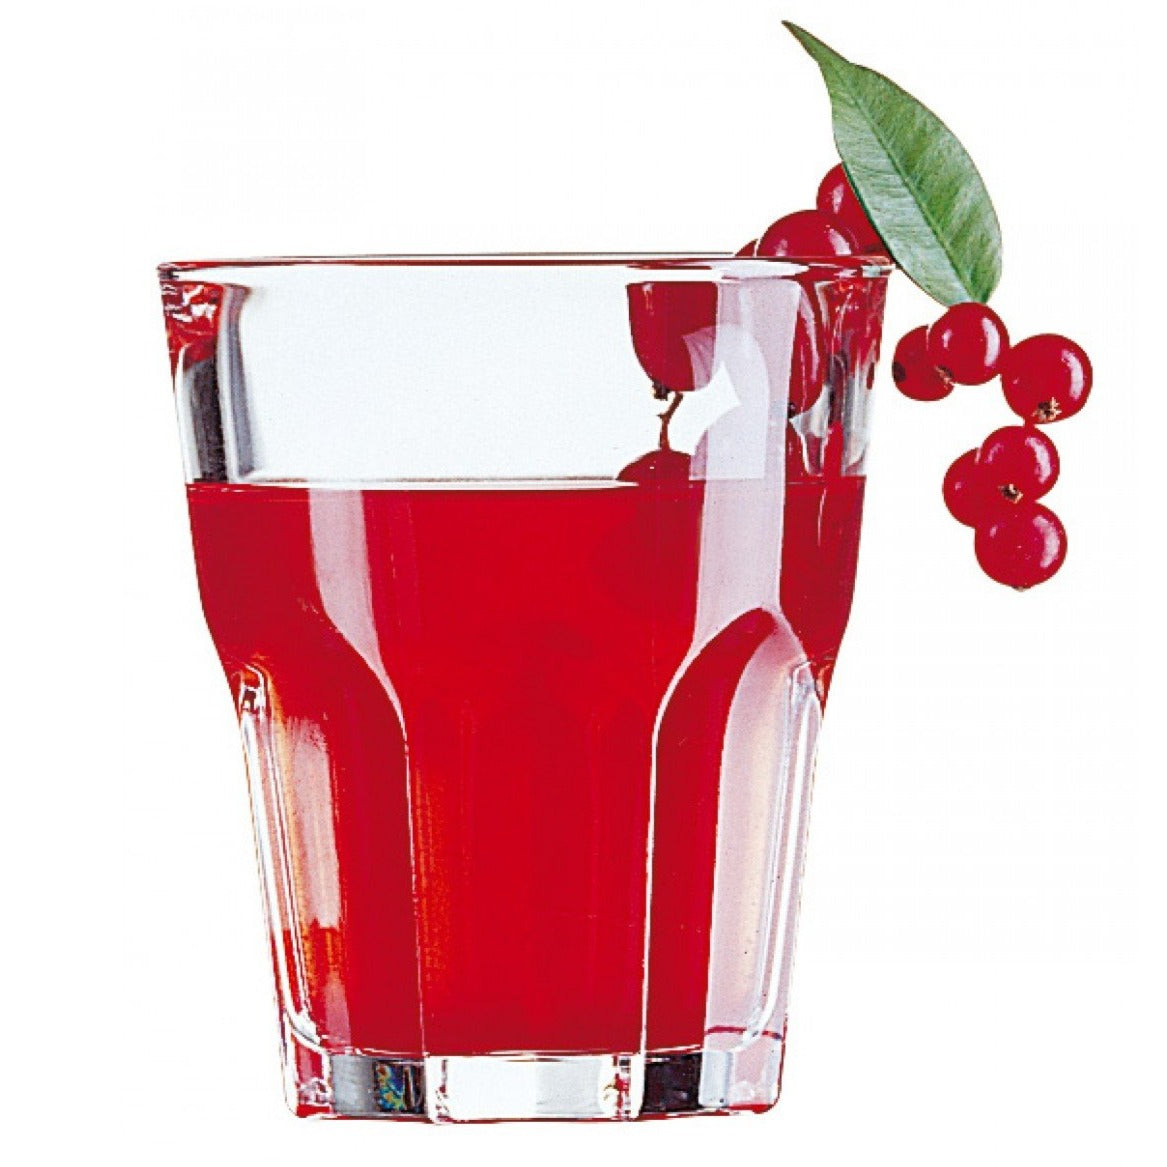 ARCOROC GRANITY TEMPERED SHOT GLASS - 1.5 OZ - Mabrook Hotel Supplies